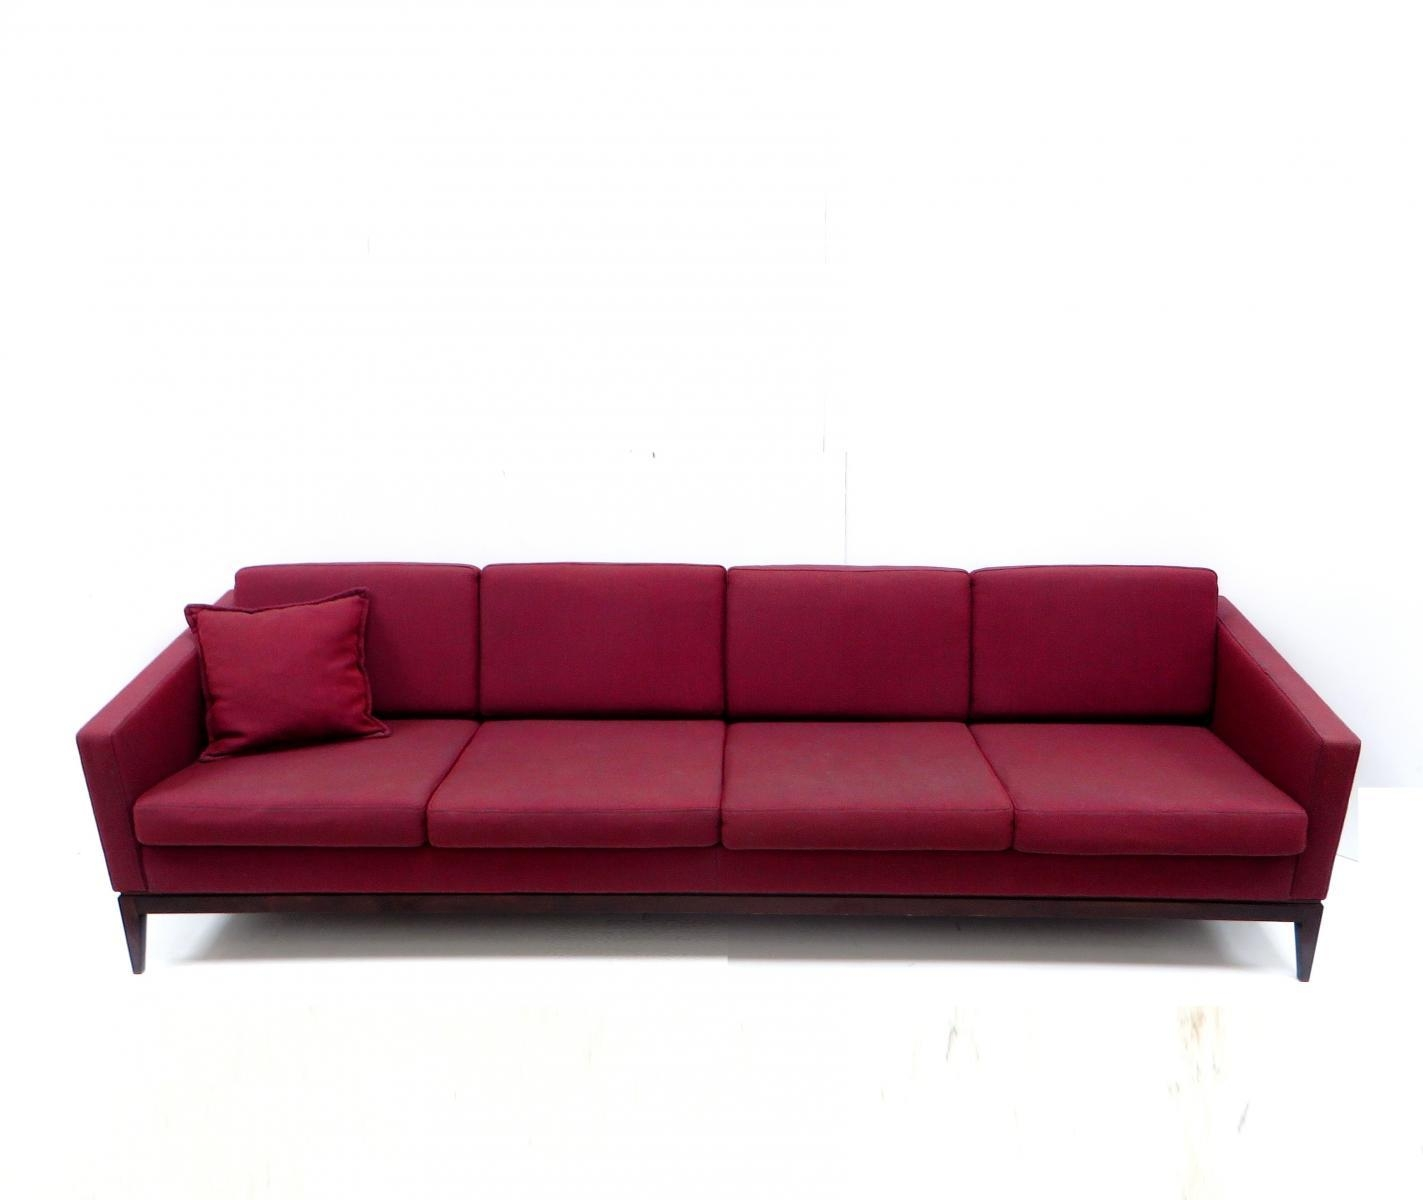 Large Vintage Burgundy Four Seater Sofa For Sale At Pamono Throughout Four Seater Sofas (View 20 of 20)